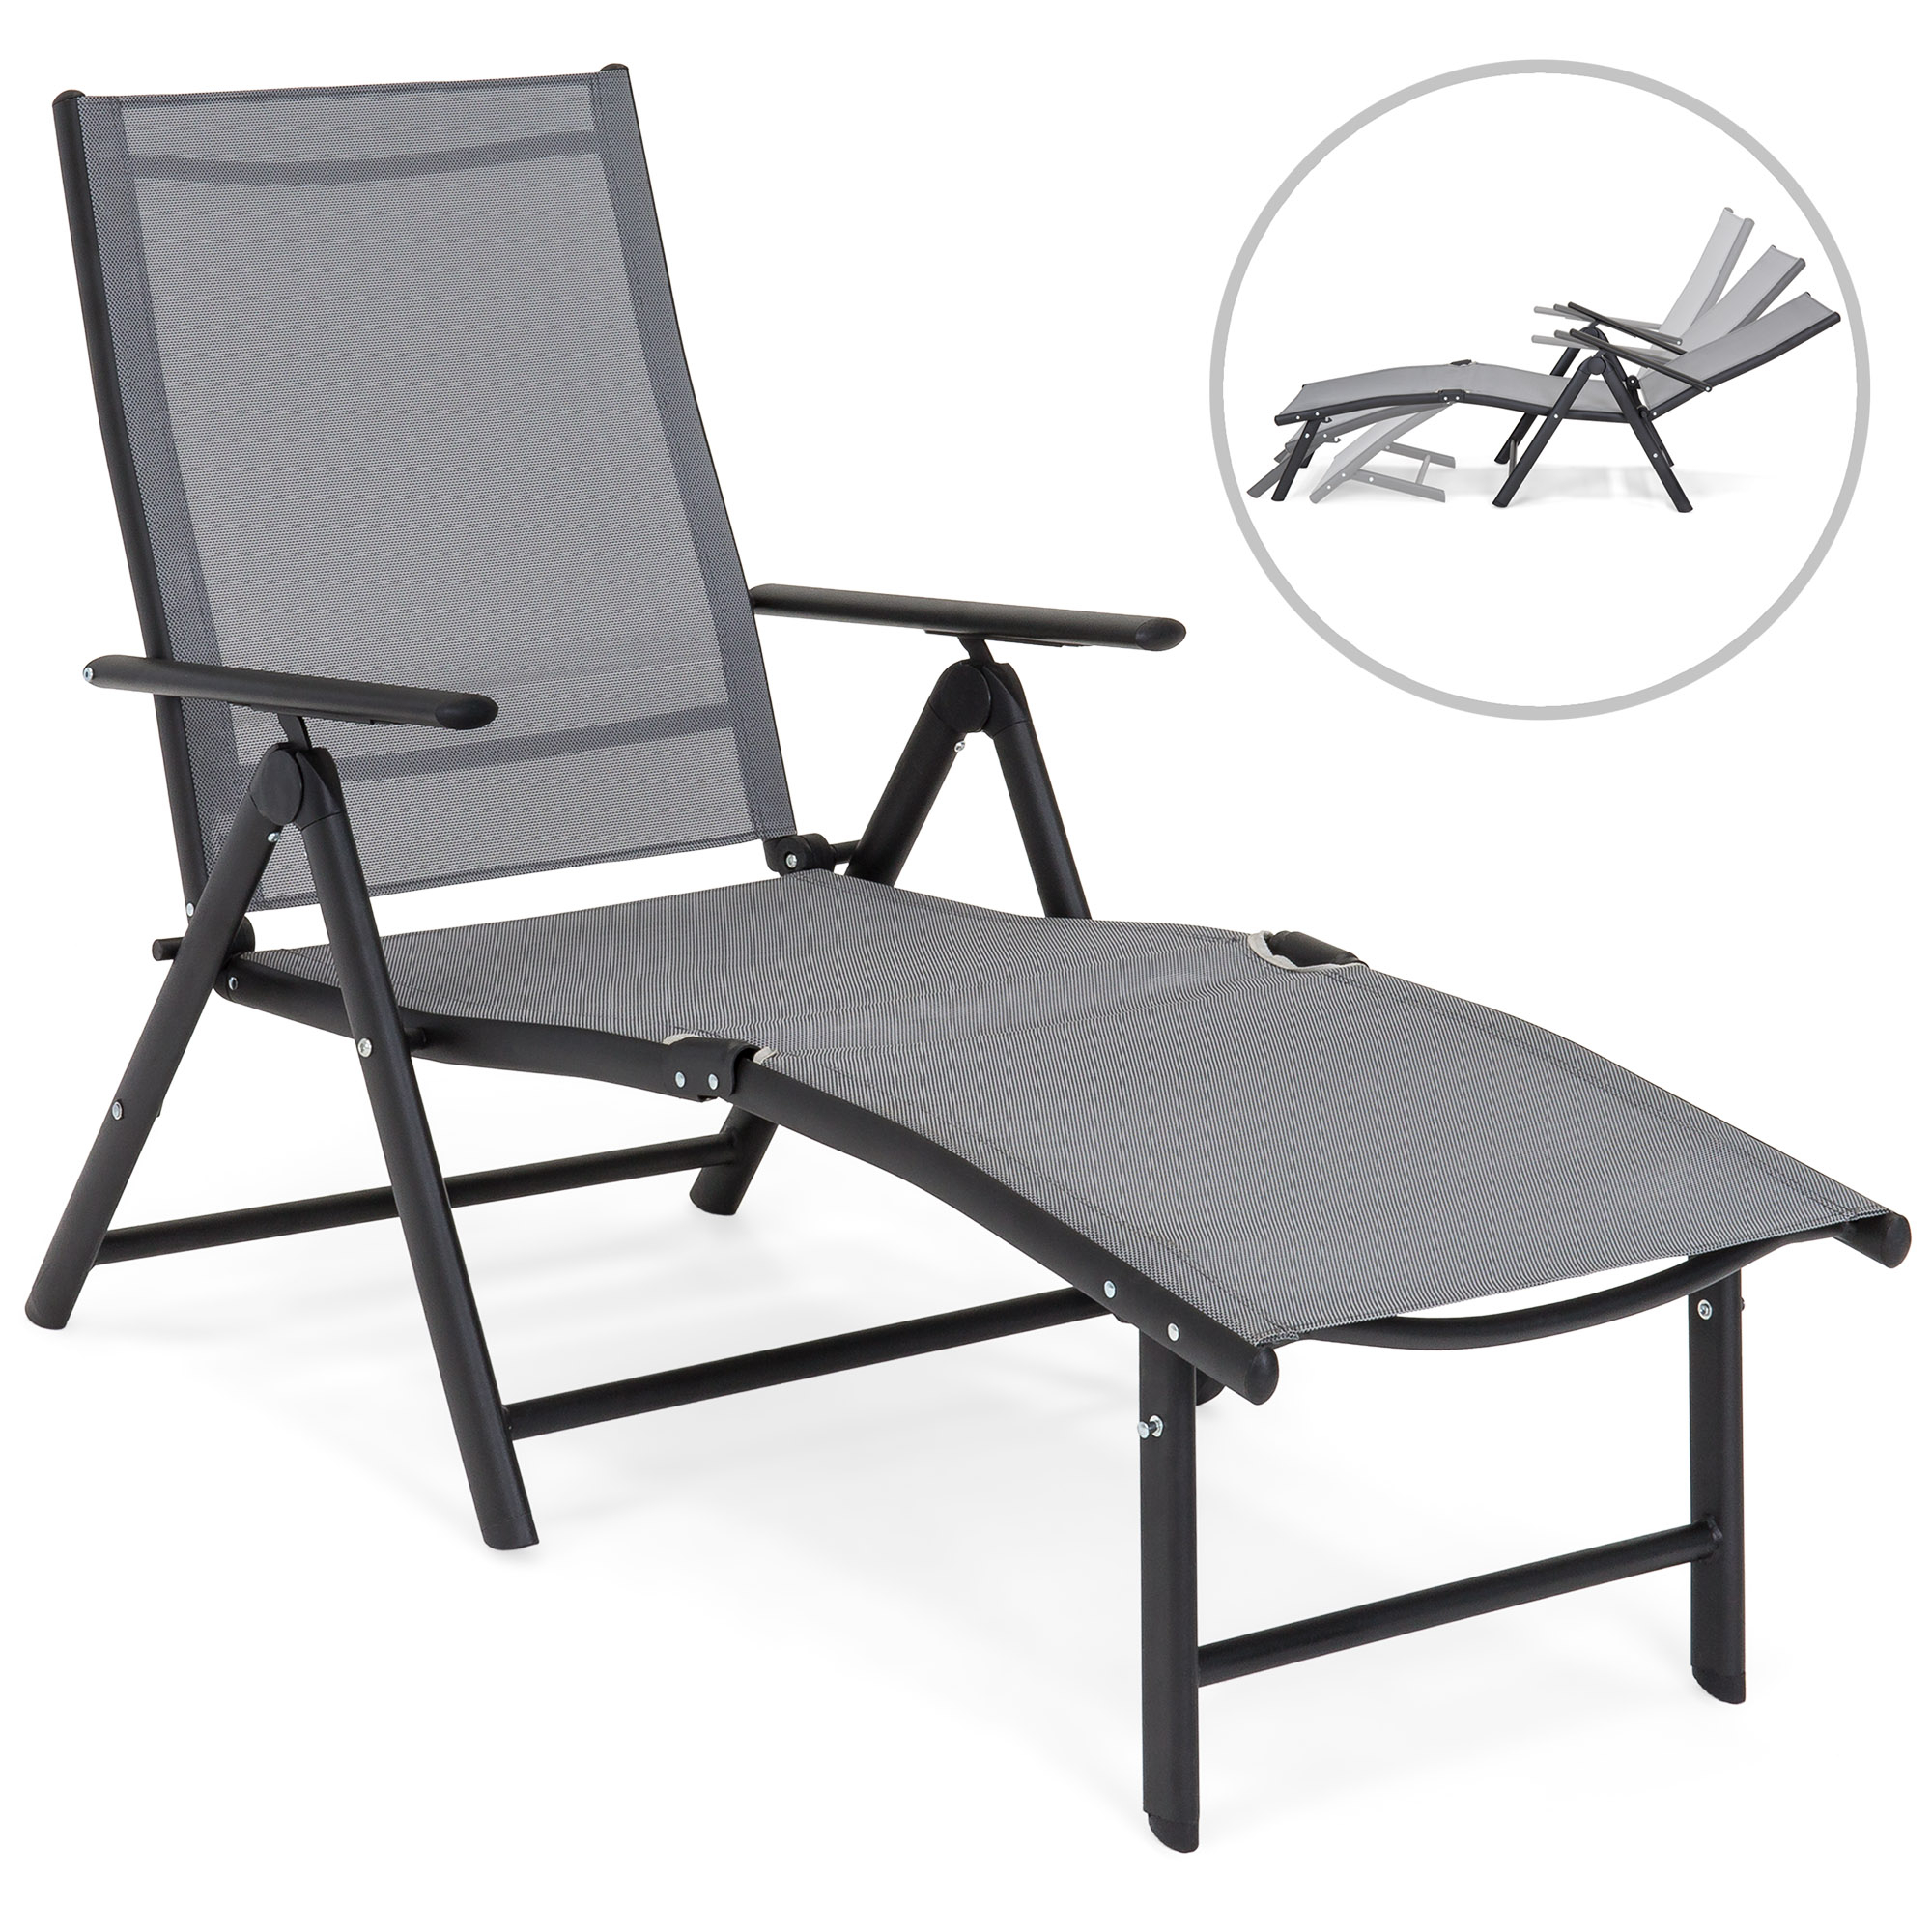 Most Current Curved Folding Chaise Loungers Inside Best Choice Products Reclining Folding Chaise Lounge Chair For Outdoor,  Patio, Poolside W/ Armrests, Adjustable Foot Rest – Gray (View 14 of 25)